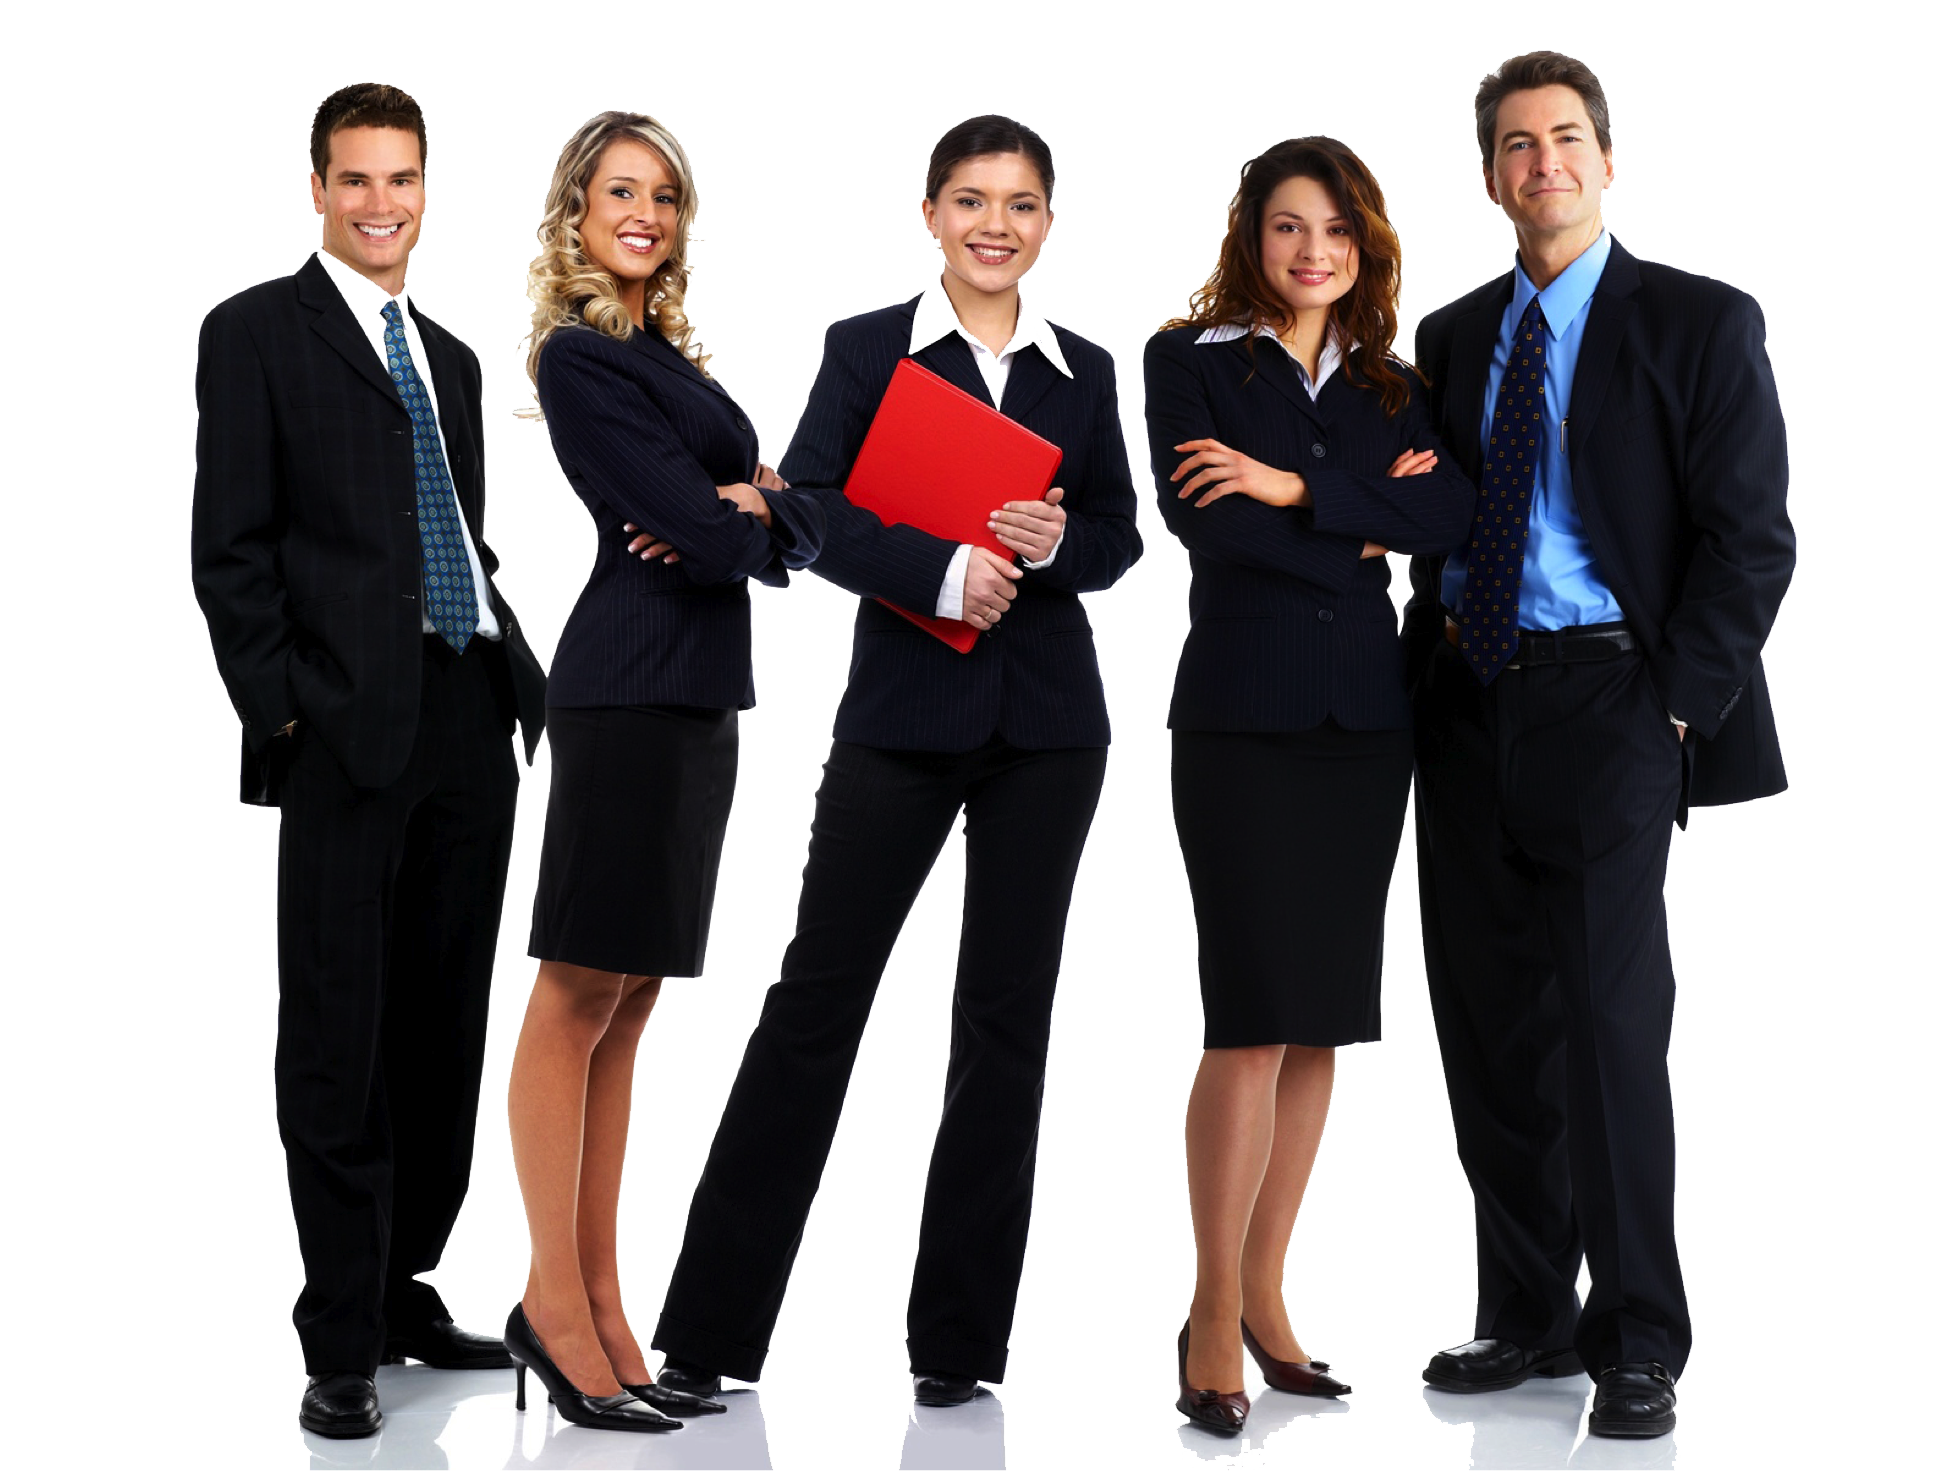 Business HD PNG - 92089